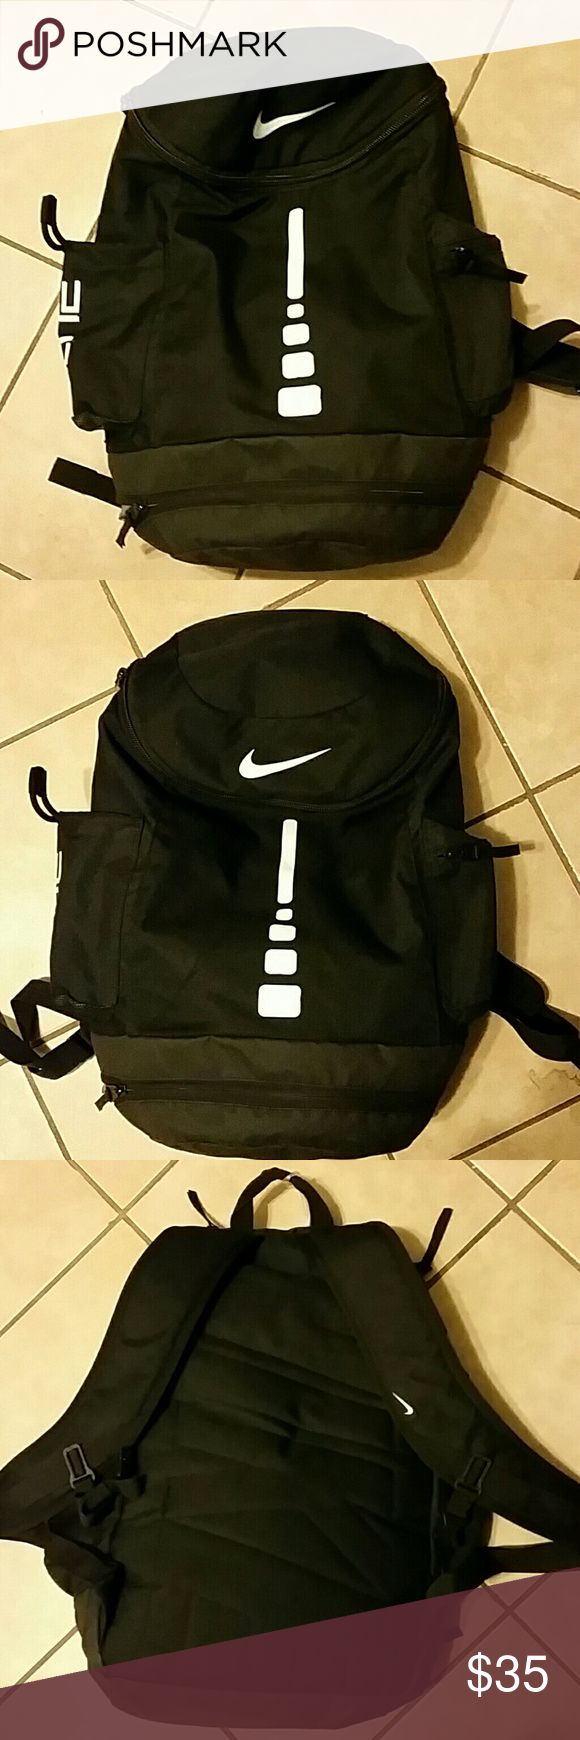 Nike Elite Backpack (black) Nike elite backpack is durable, water resistant, lightweight with plenty of space. Can hold shoes, gear, and a basketball. 1 main compartment, 1 zipper side pocket, a side beverage pocket, and a compartment for your wer gear or shoes on the bottom nike Bags Backpacks